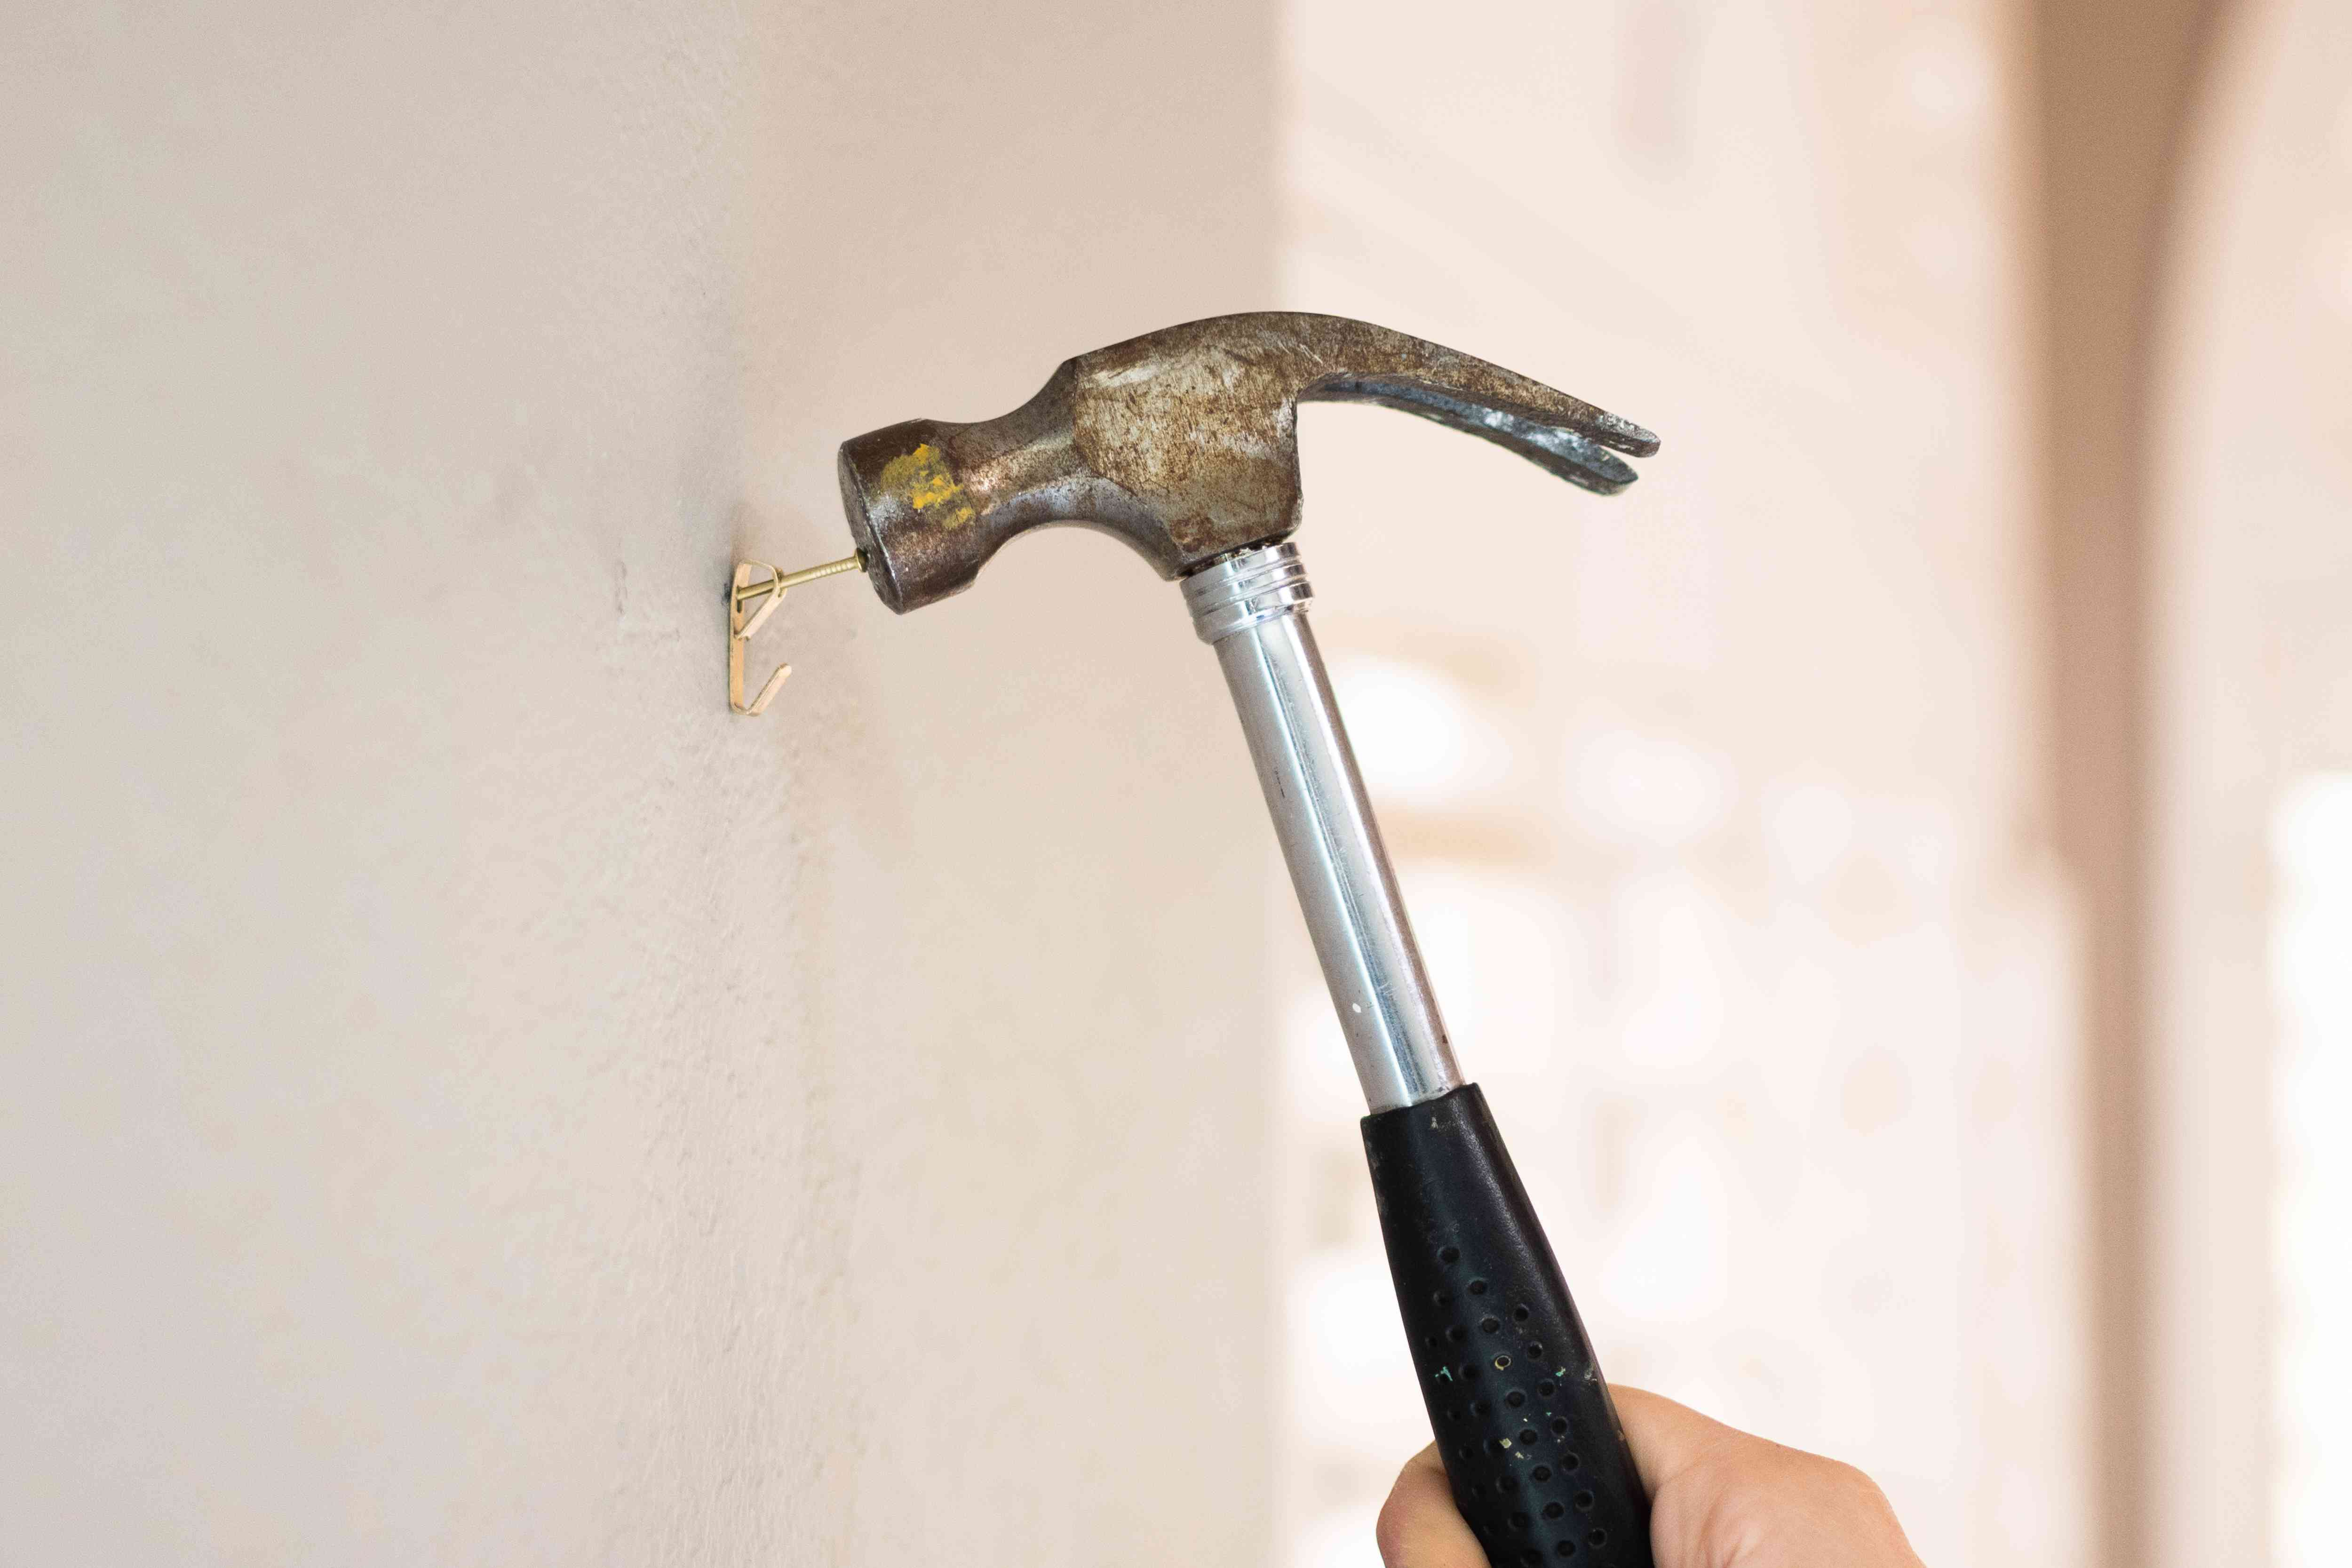 Hammer tapping nail on wall to place bottom of sawtooth hanger